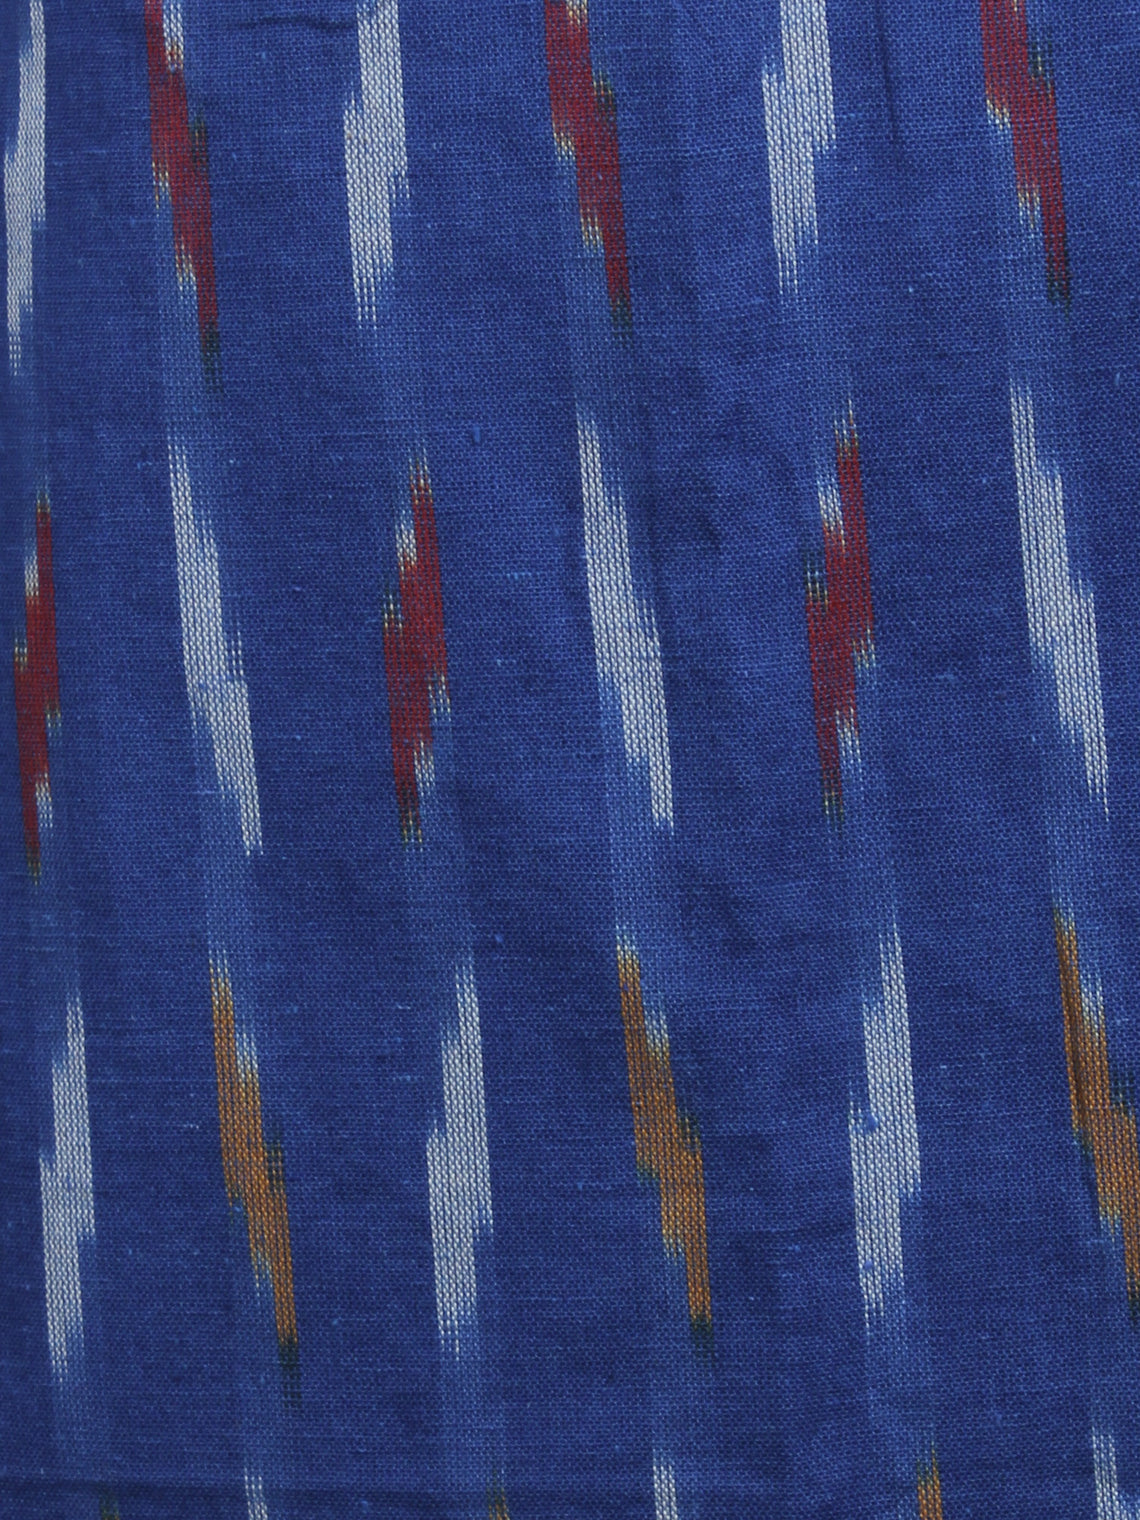 Sapphire Blue Ivory Multi Color Ikat Handwoven Cotton Suit Fabric Set of 3 - S1002031